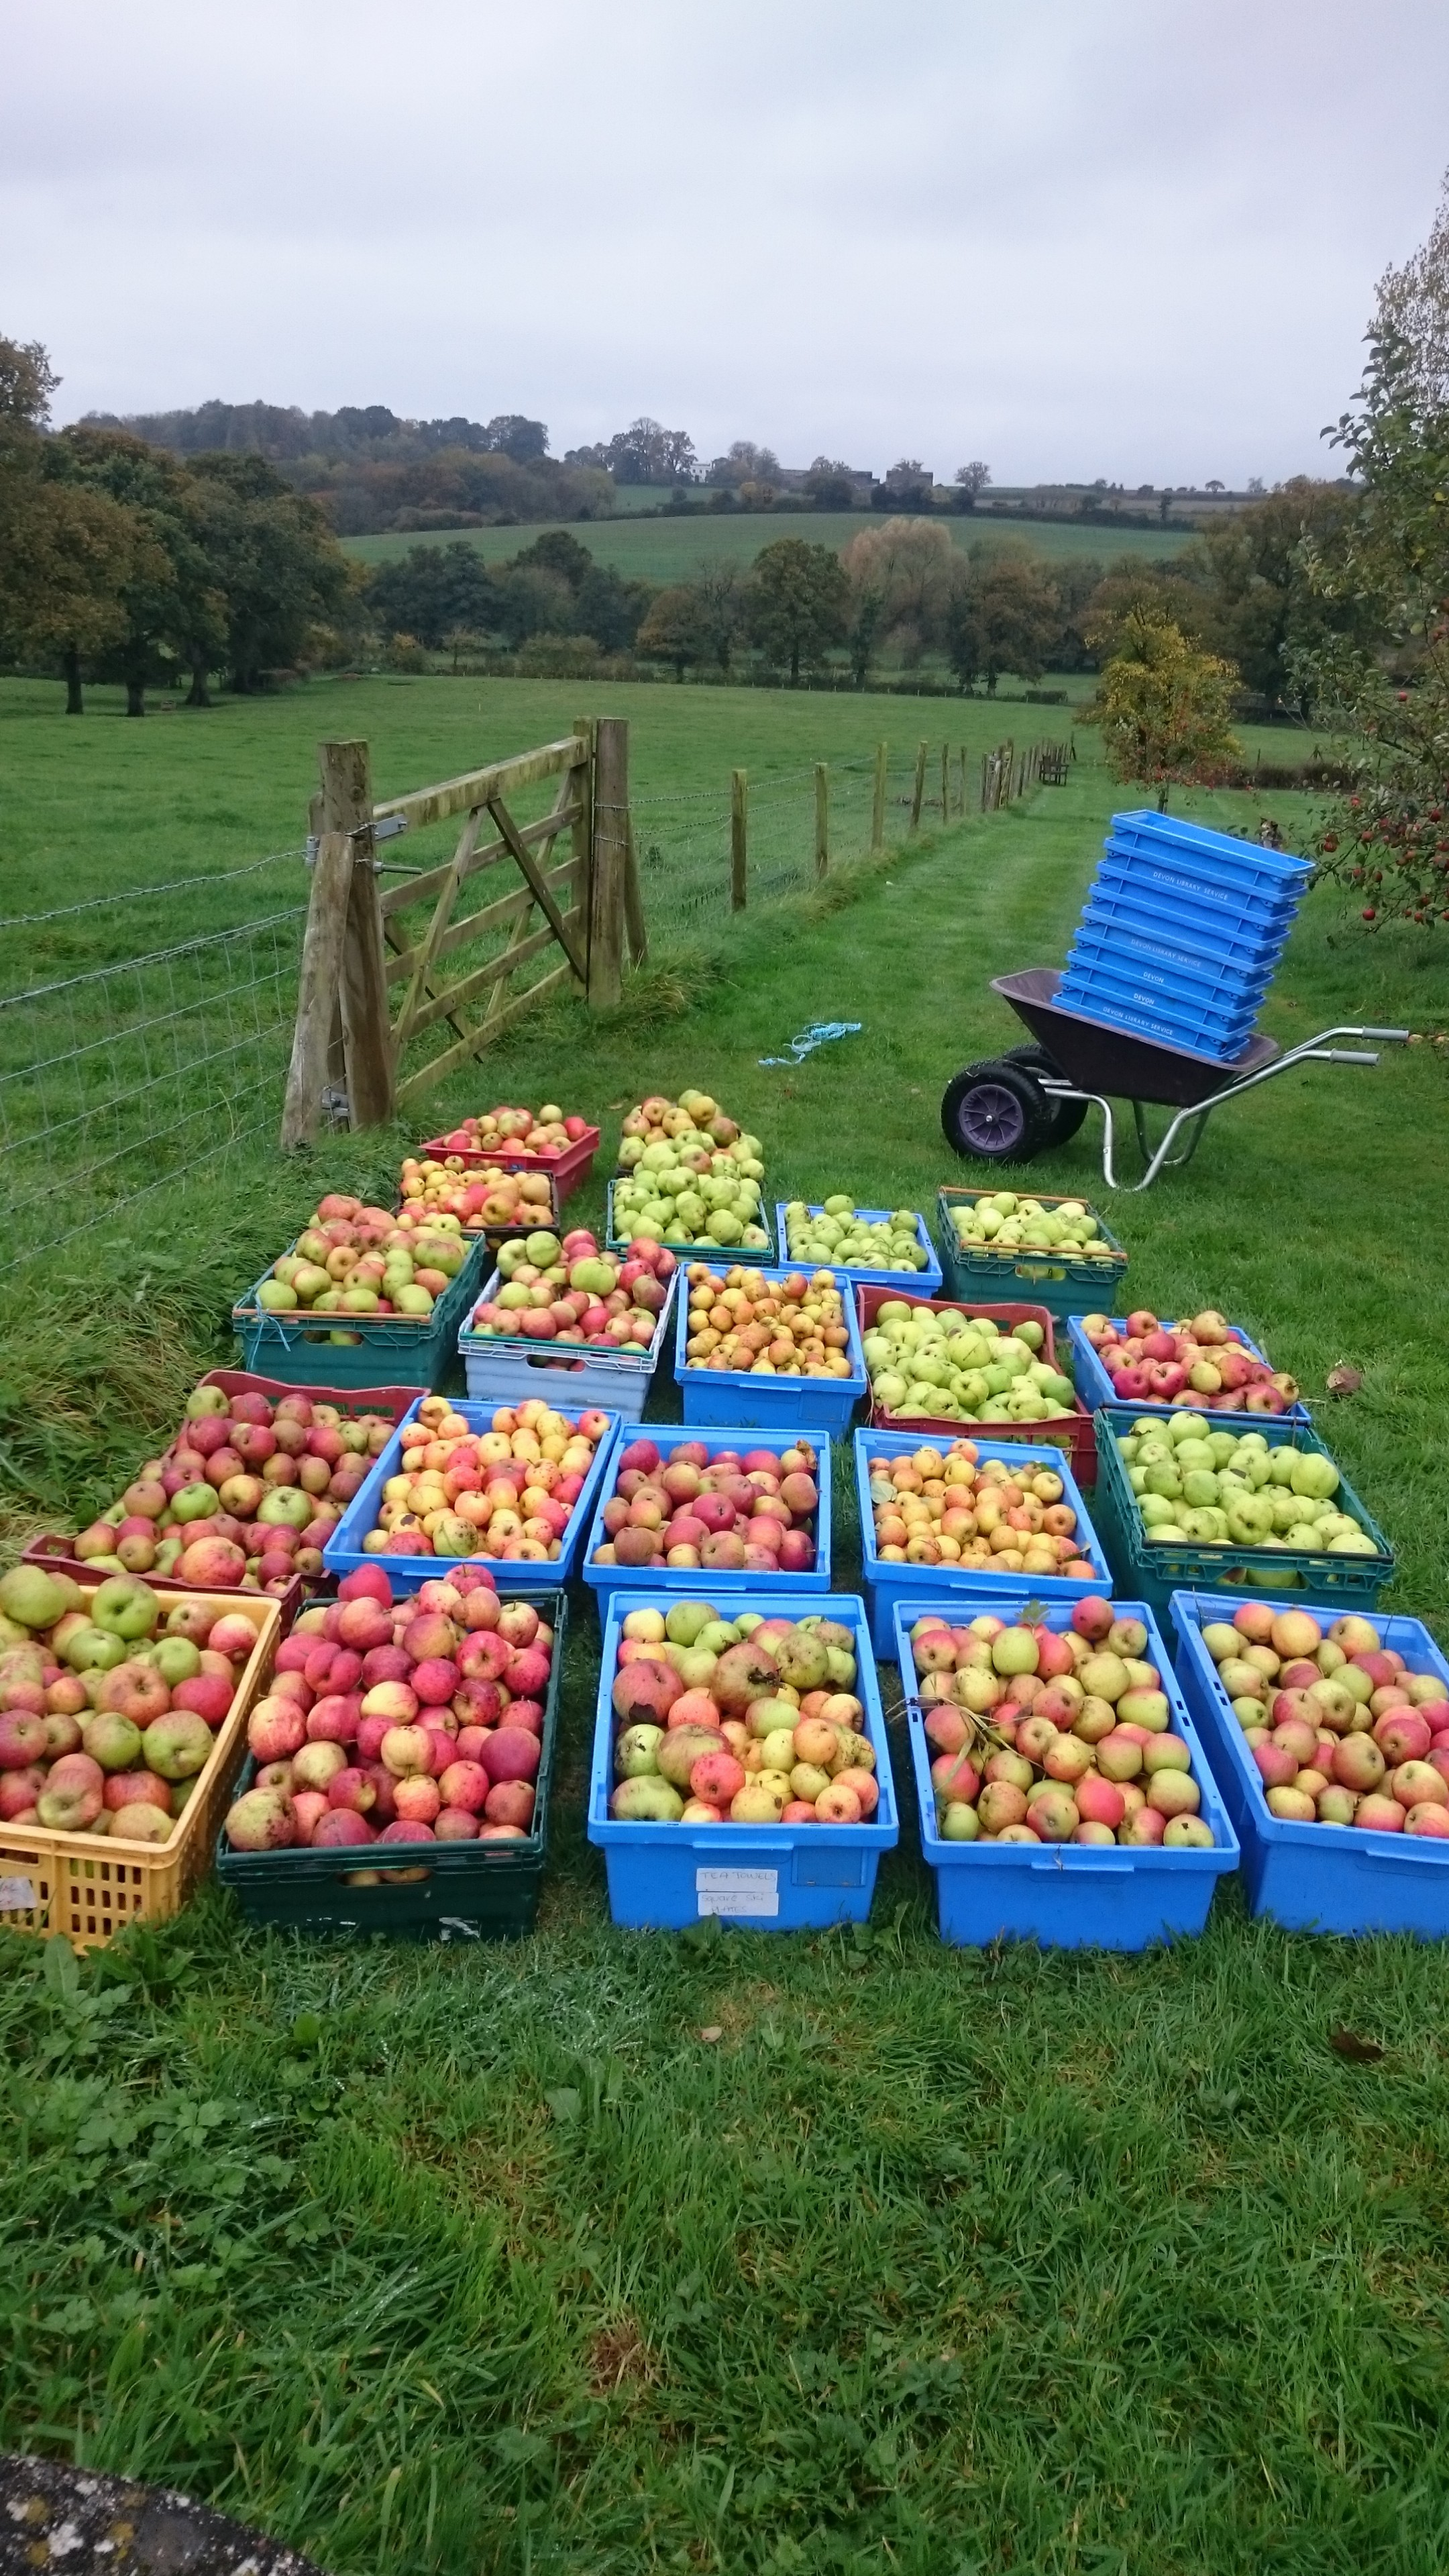 Yellingham apples